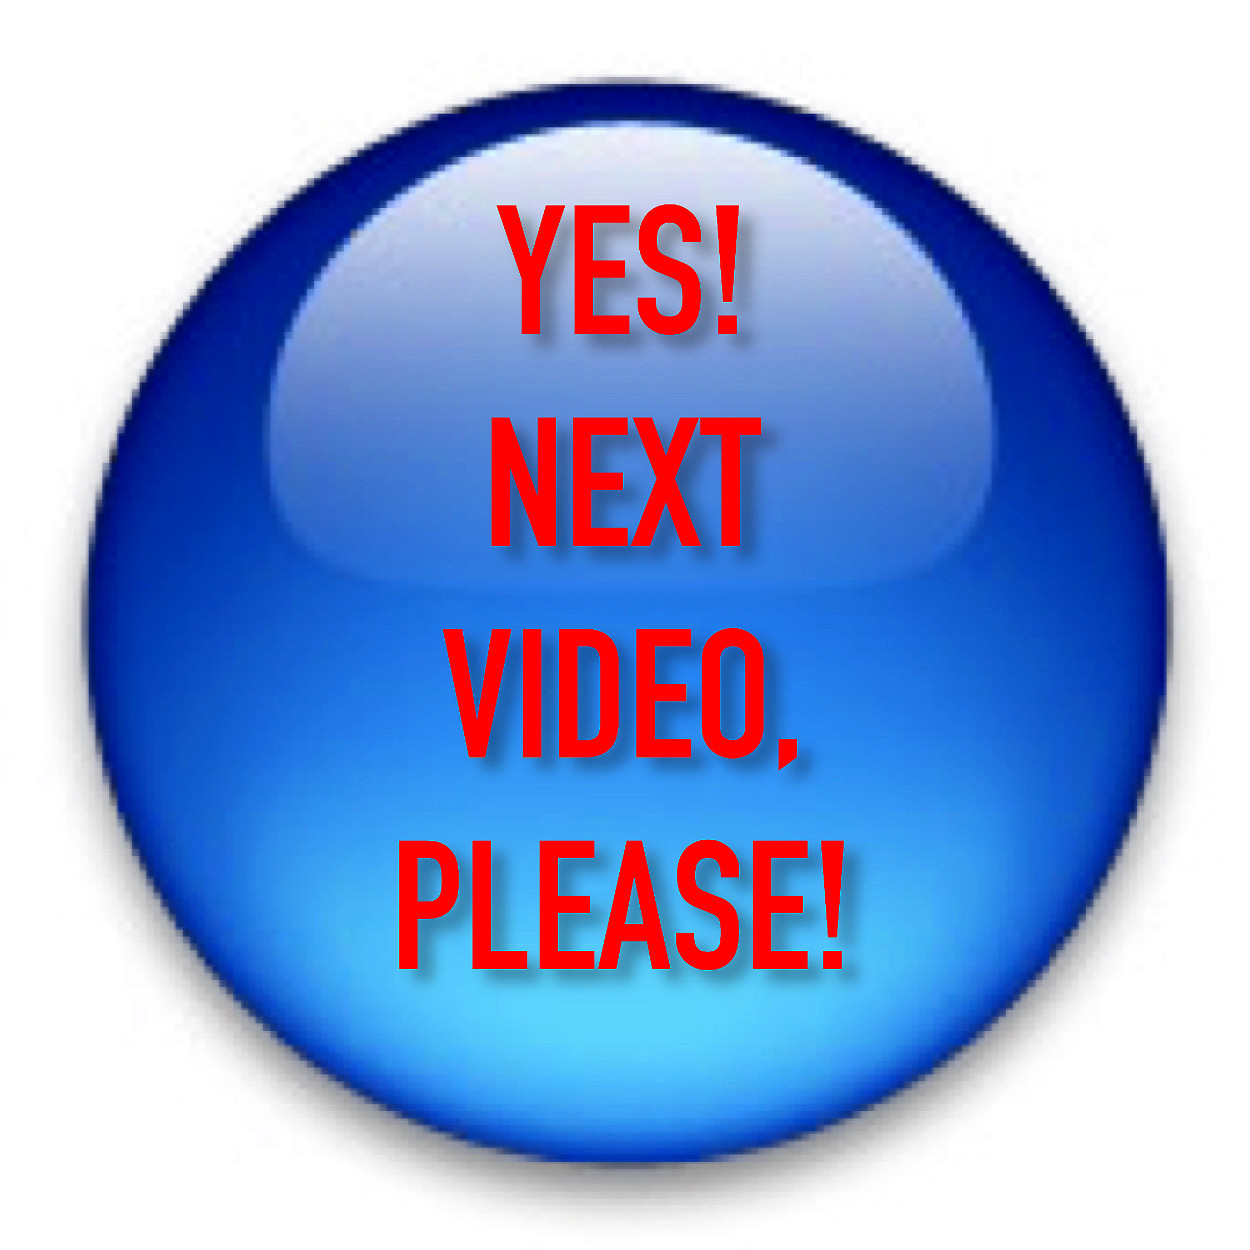 Yes! Next Video button #2